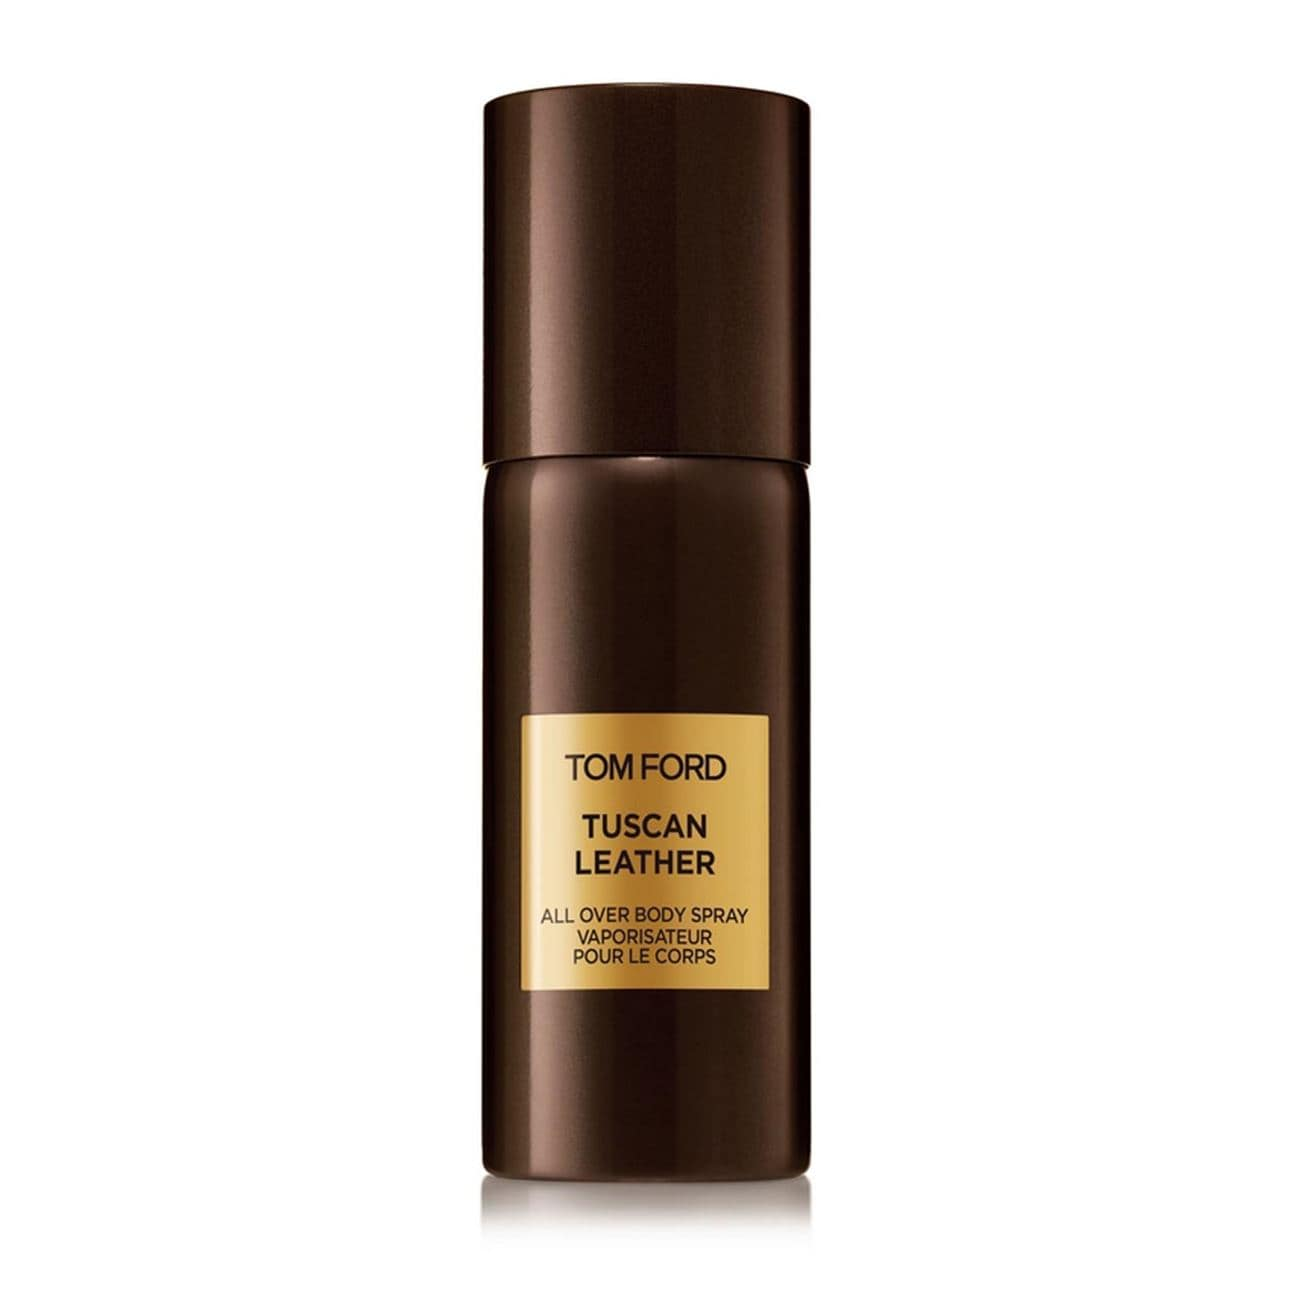 Tuscan Leather Body Spray